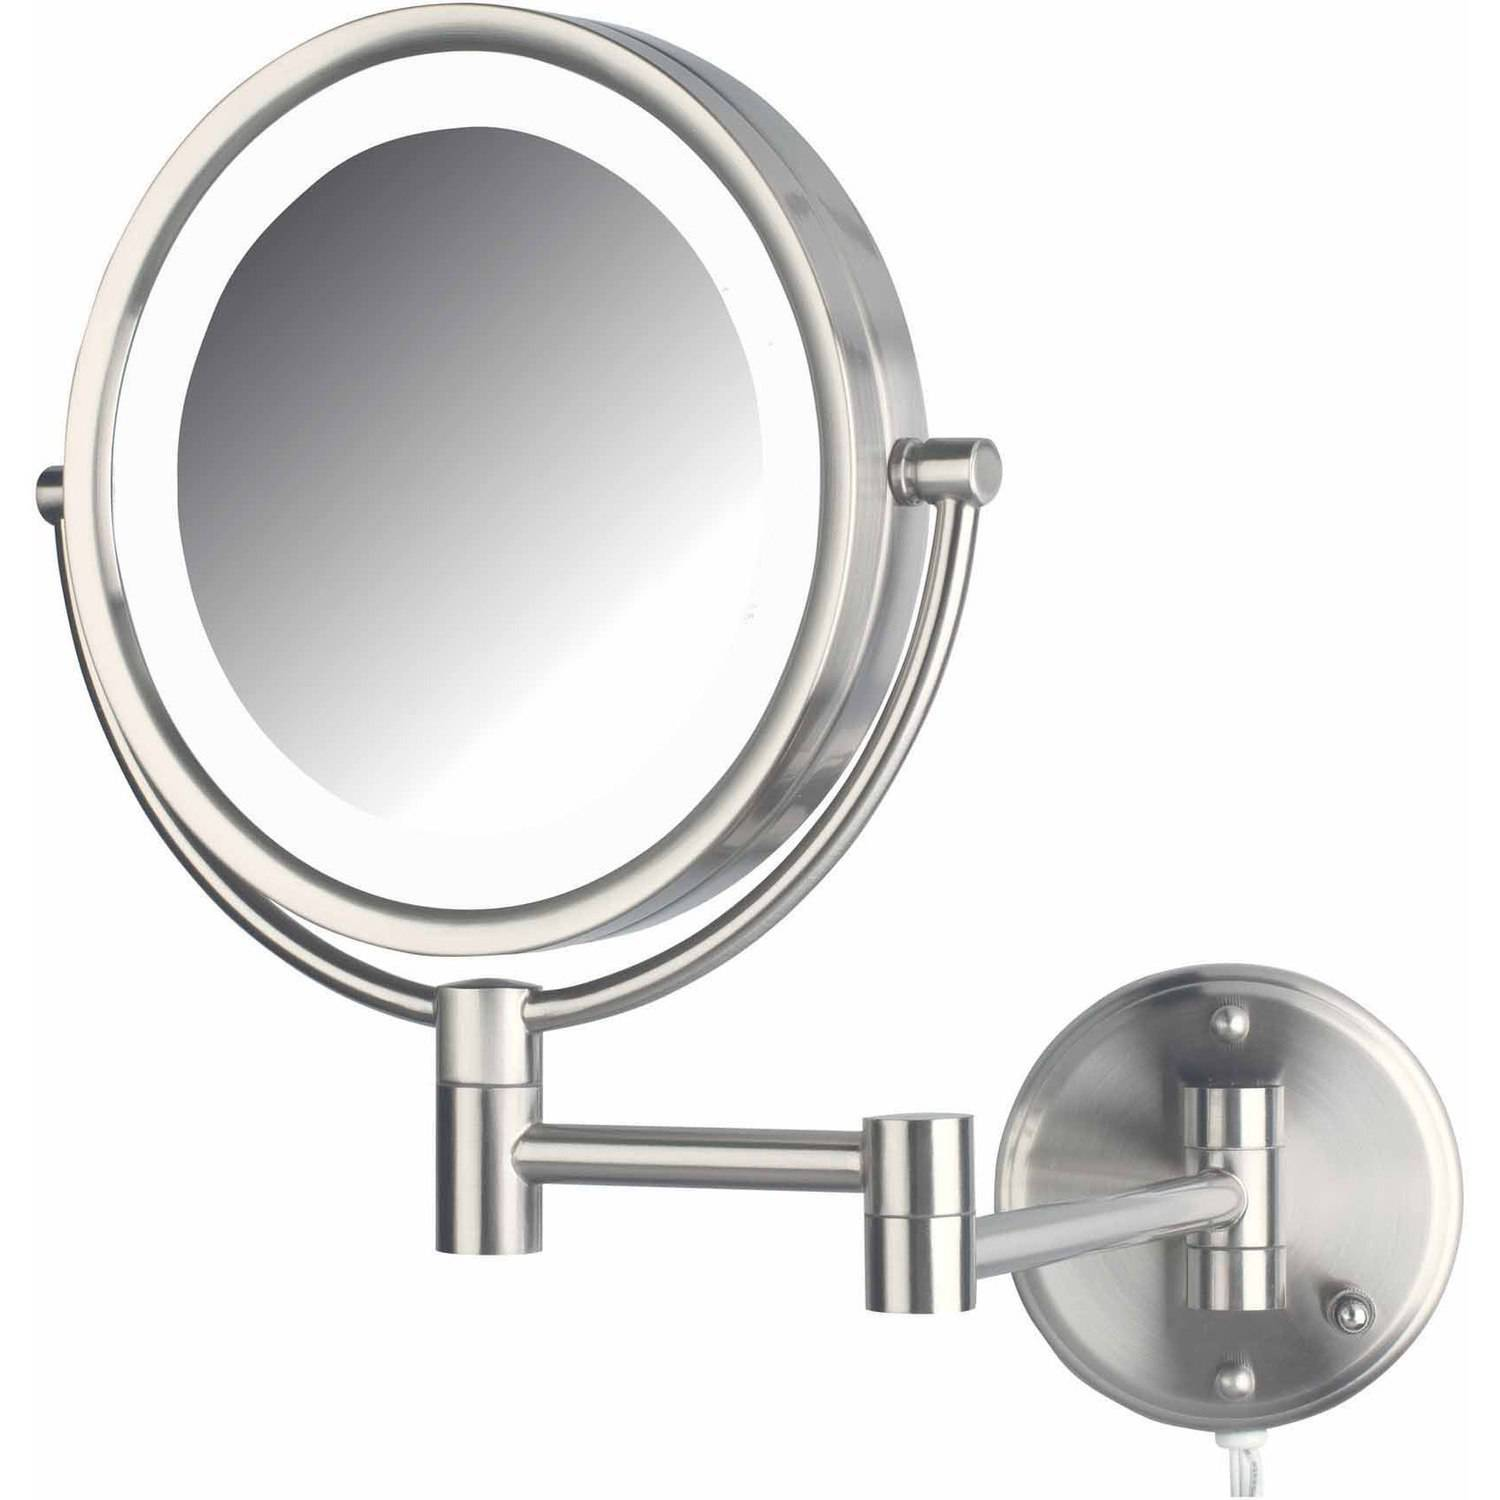 Jerdon HL88NL 8.5″ LED Lighted Wall Mount Makeup Mirror with 8x Magnification, Nickel Finish (Walmart)